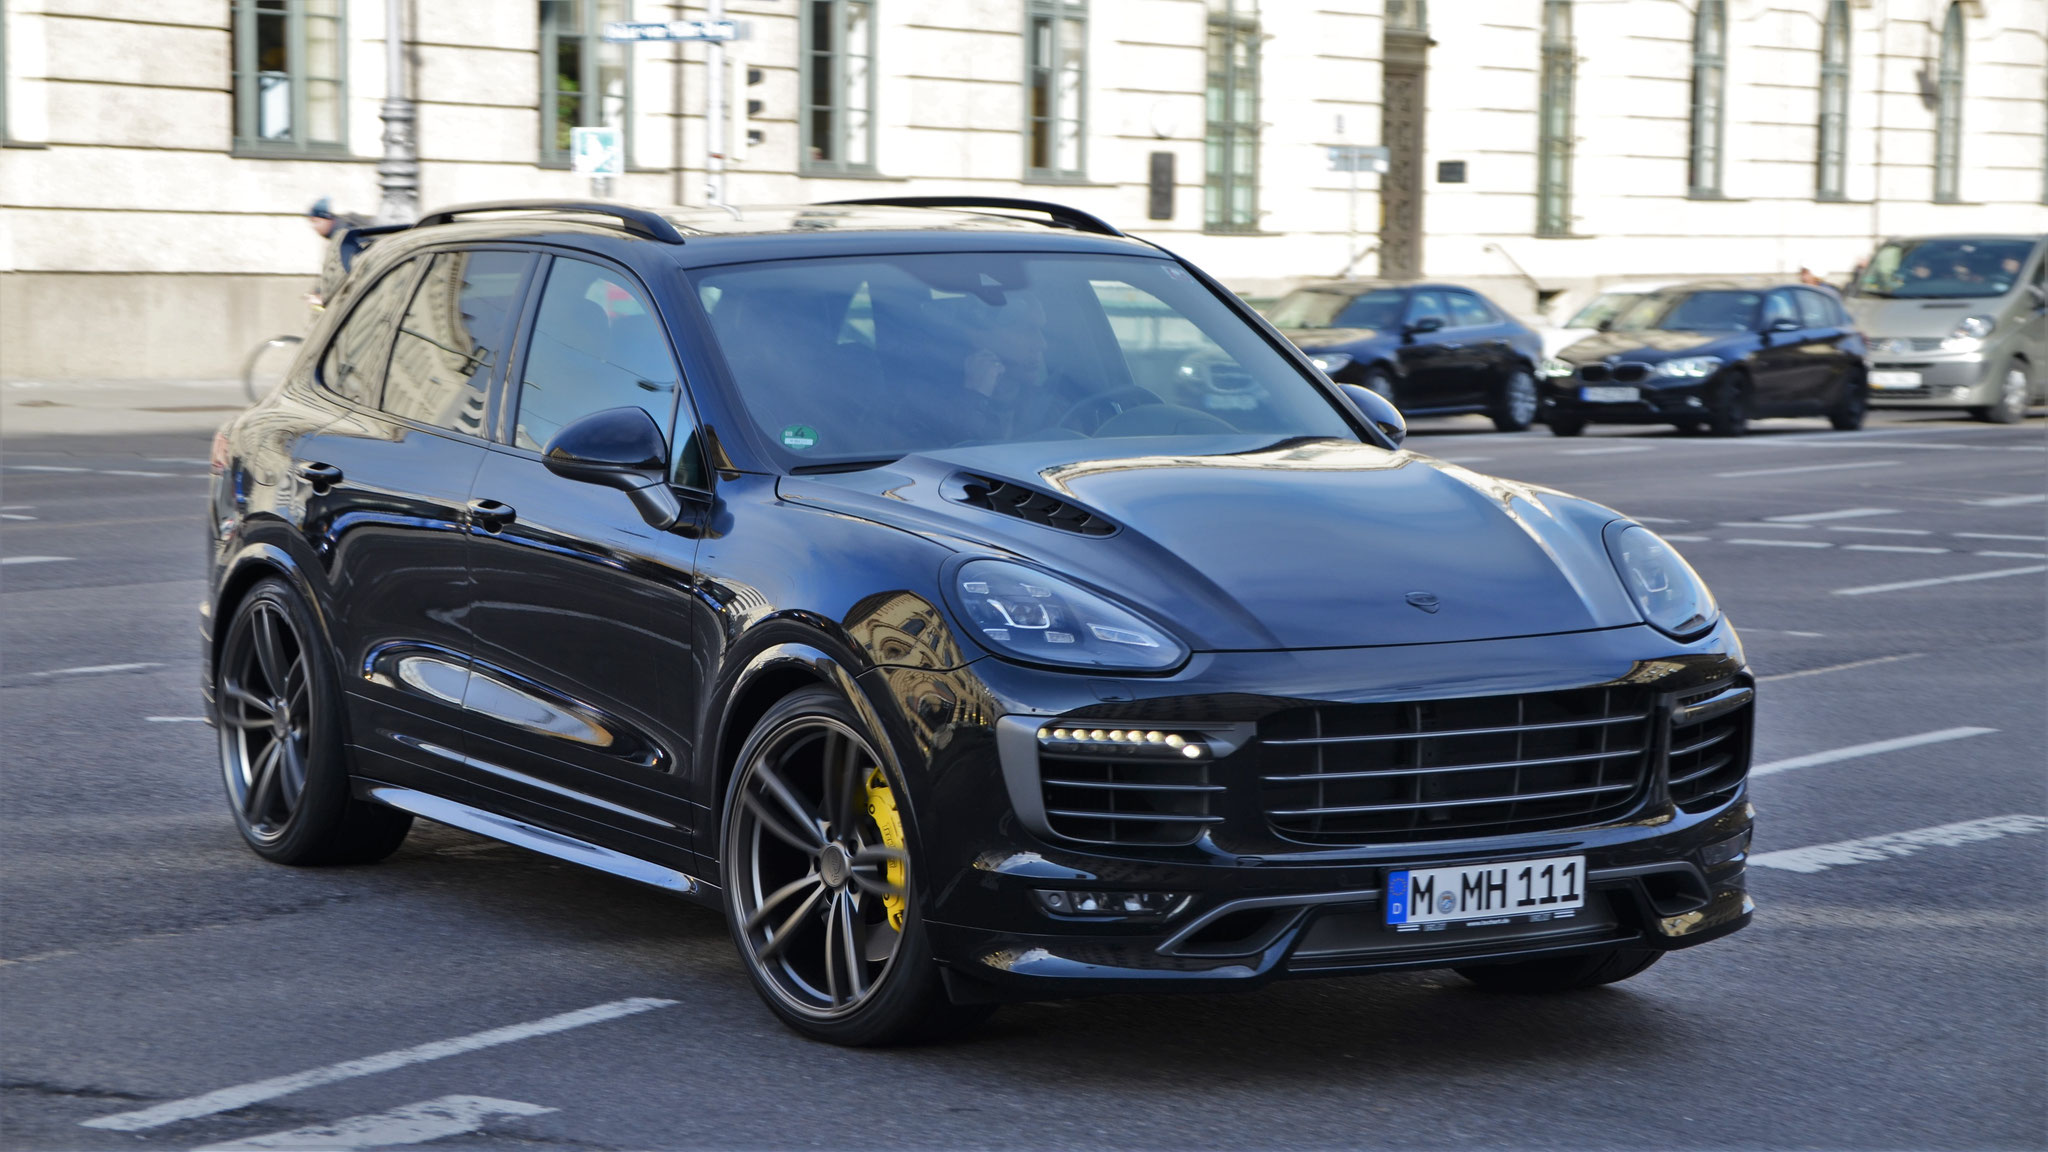 Techart Cayenne Turbo - M-MH-111